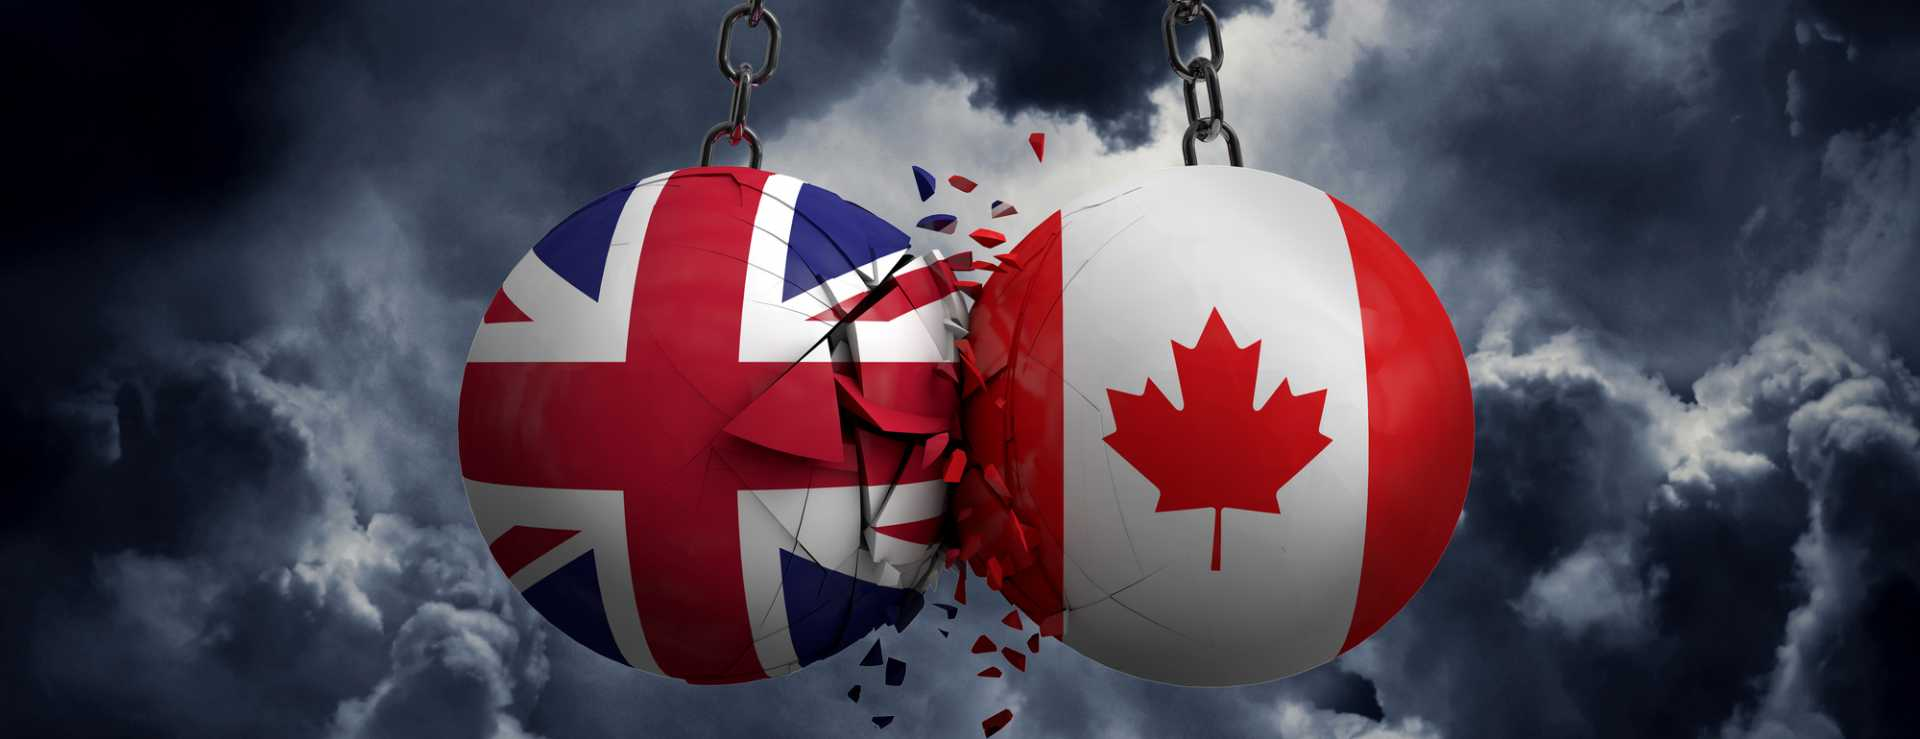 United Kingdom and Canada flag political balls smash into each other - image courtesy of Depositphotos.